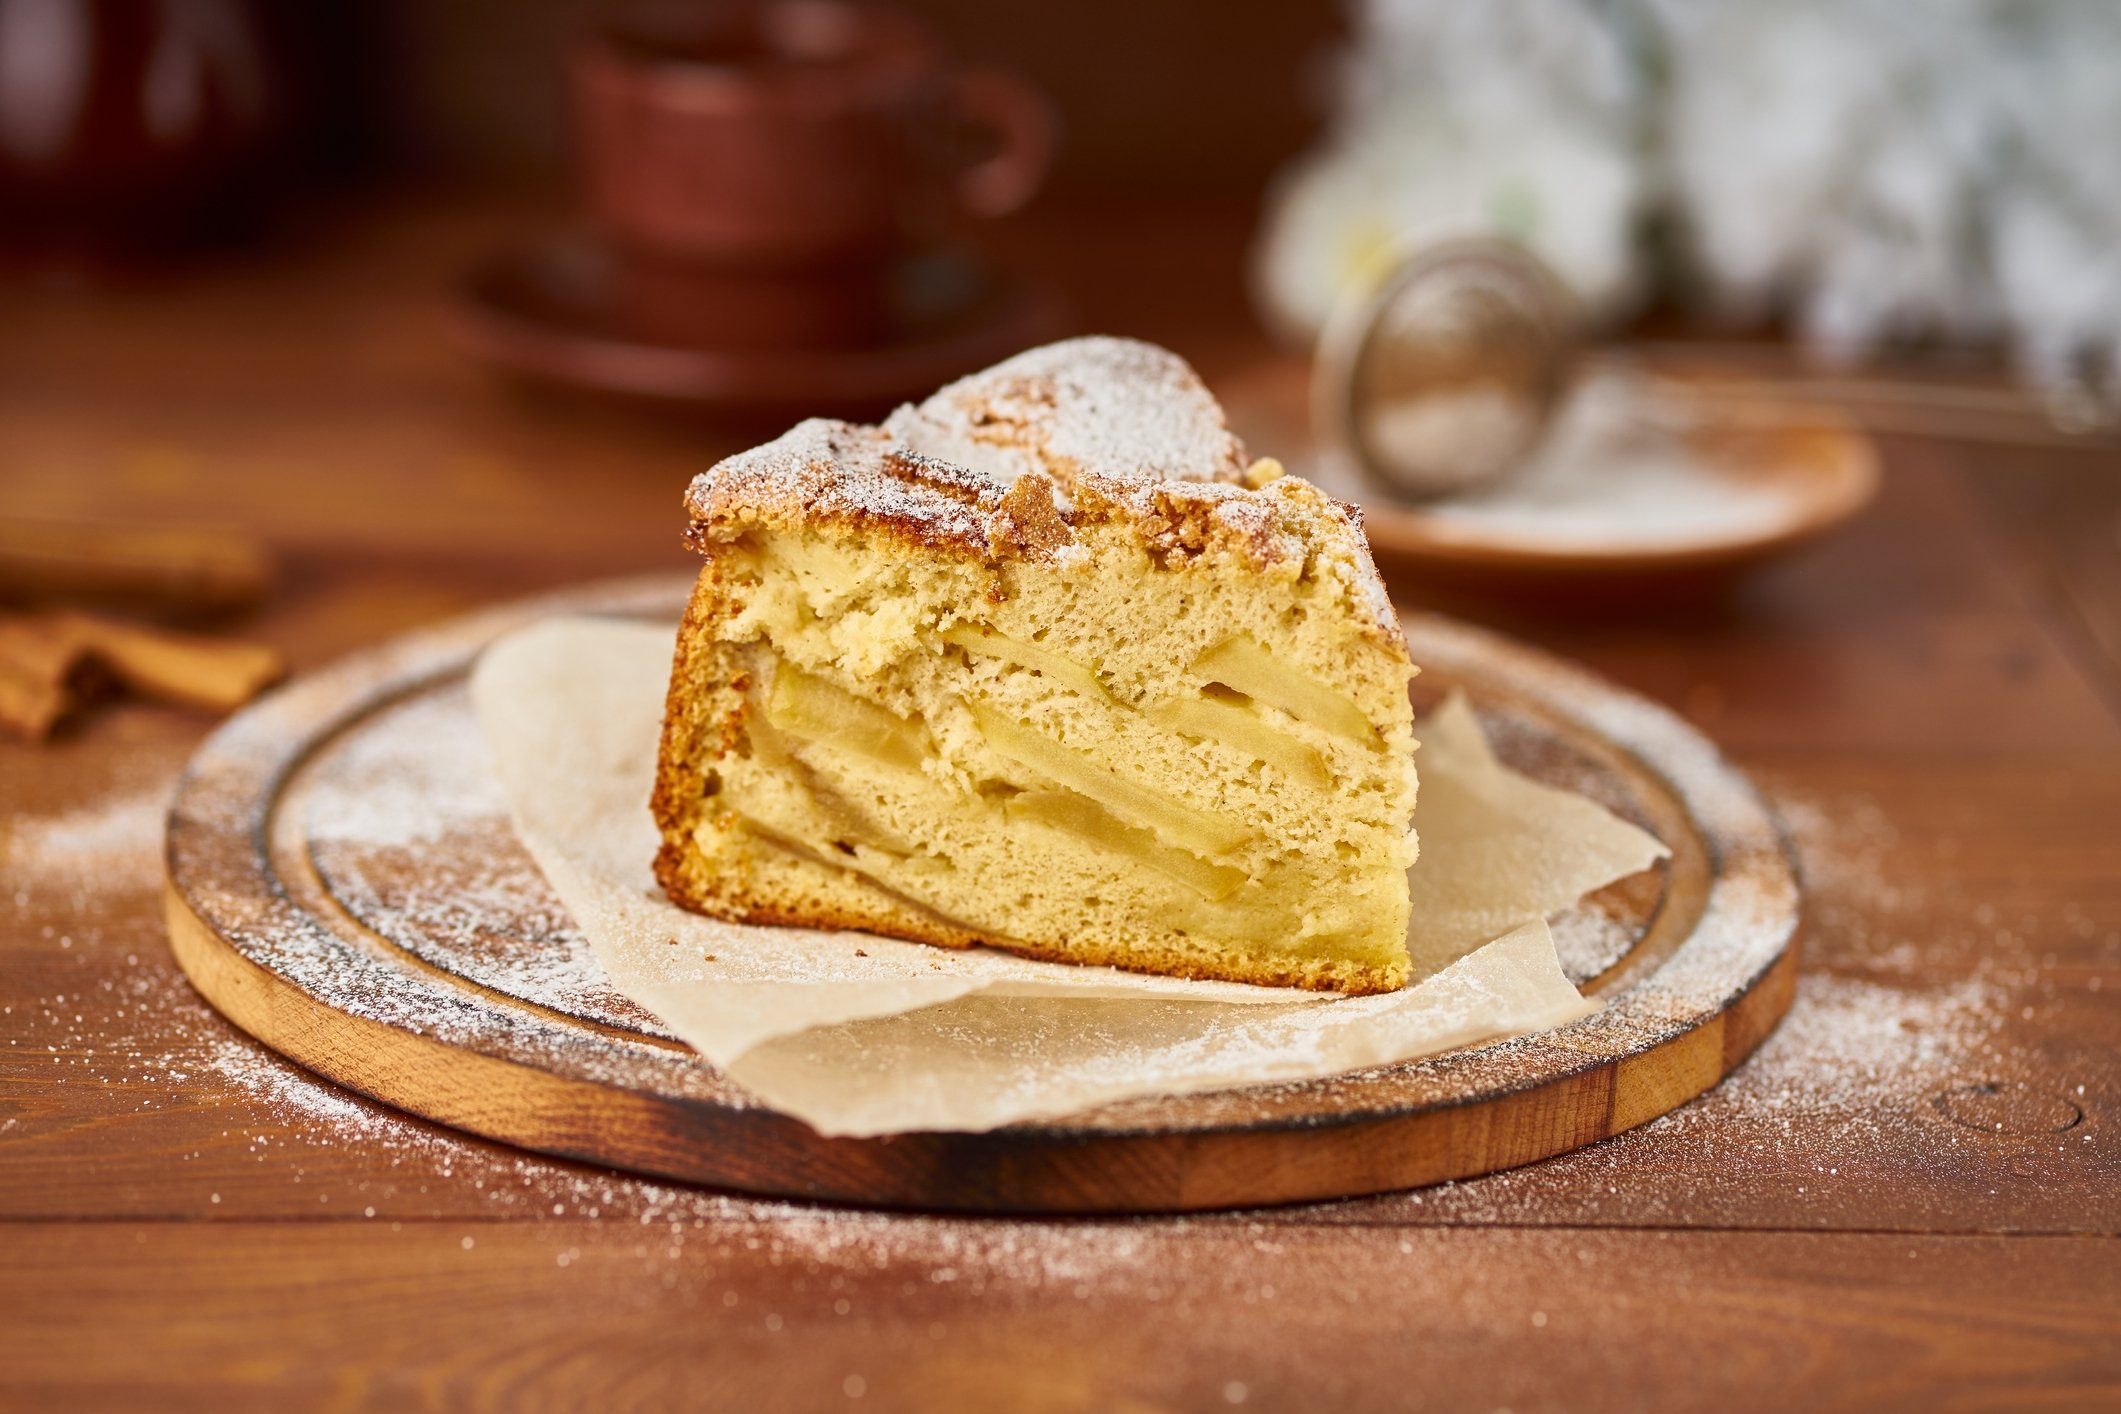 Powdered sugar is great to top off a classic apple cake. (iStock Photo)